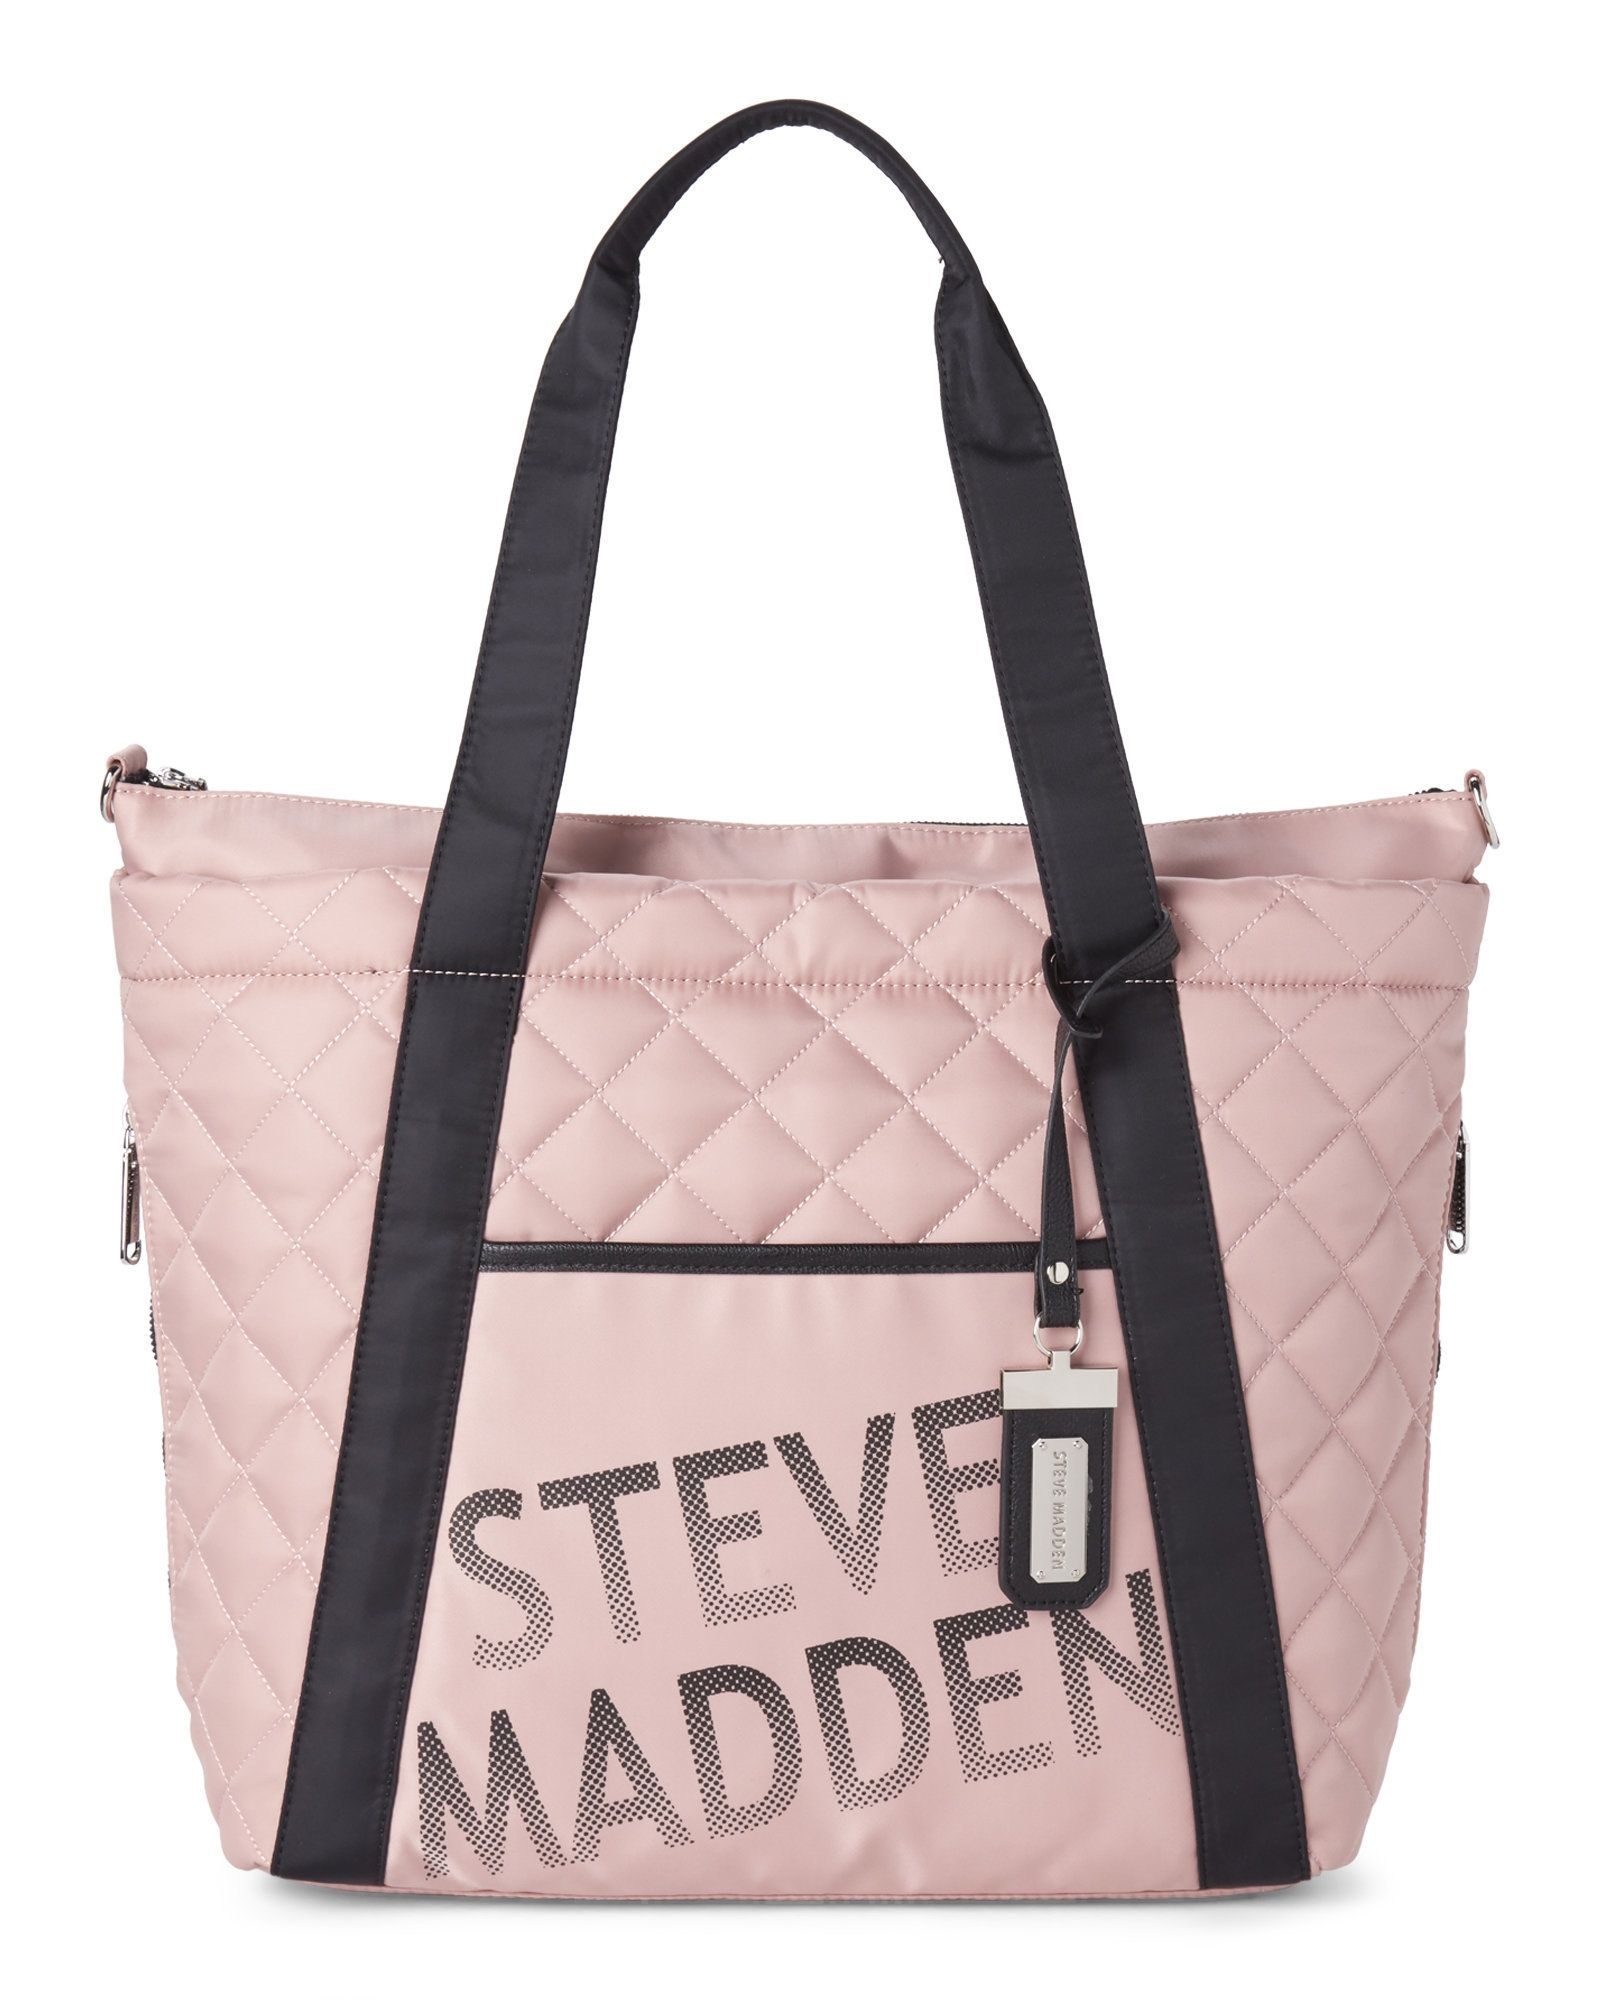 2770bec4baa8 Blush BSporty Tote - Century 21 | Bags in 2019 | Womens tote bags ...